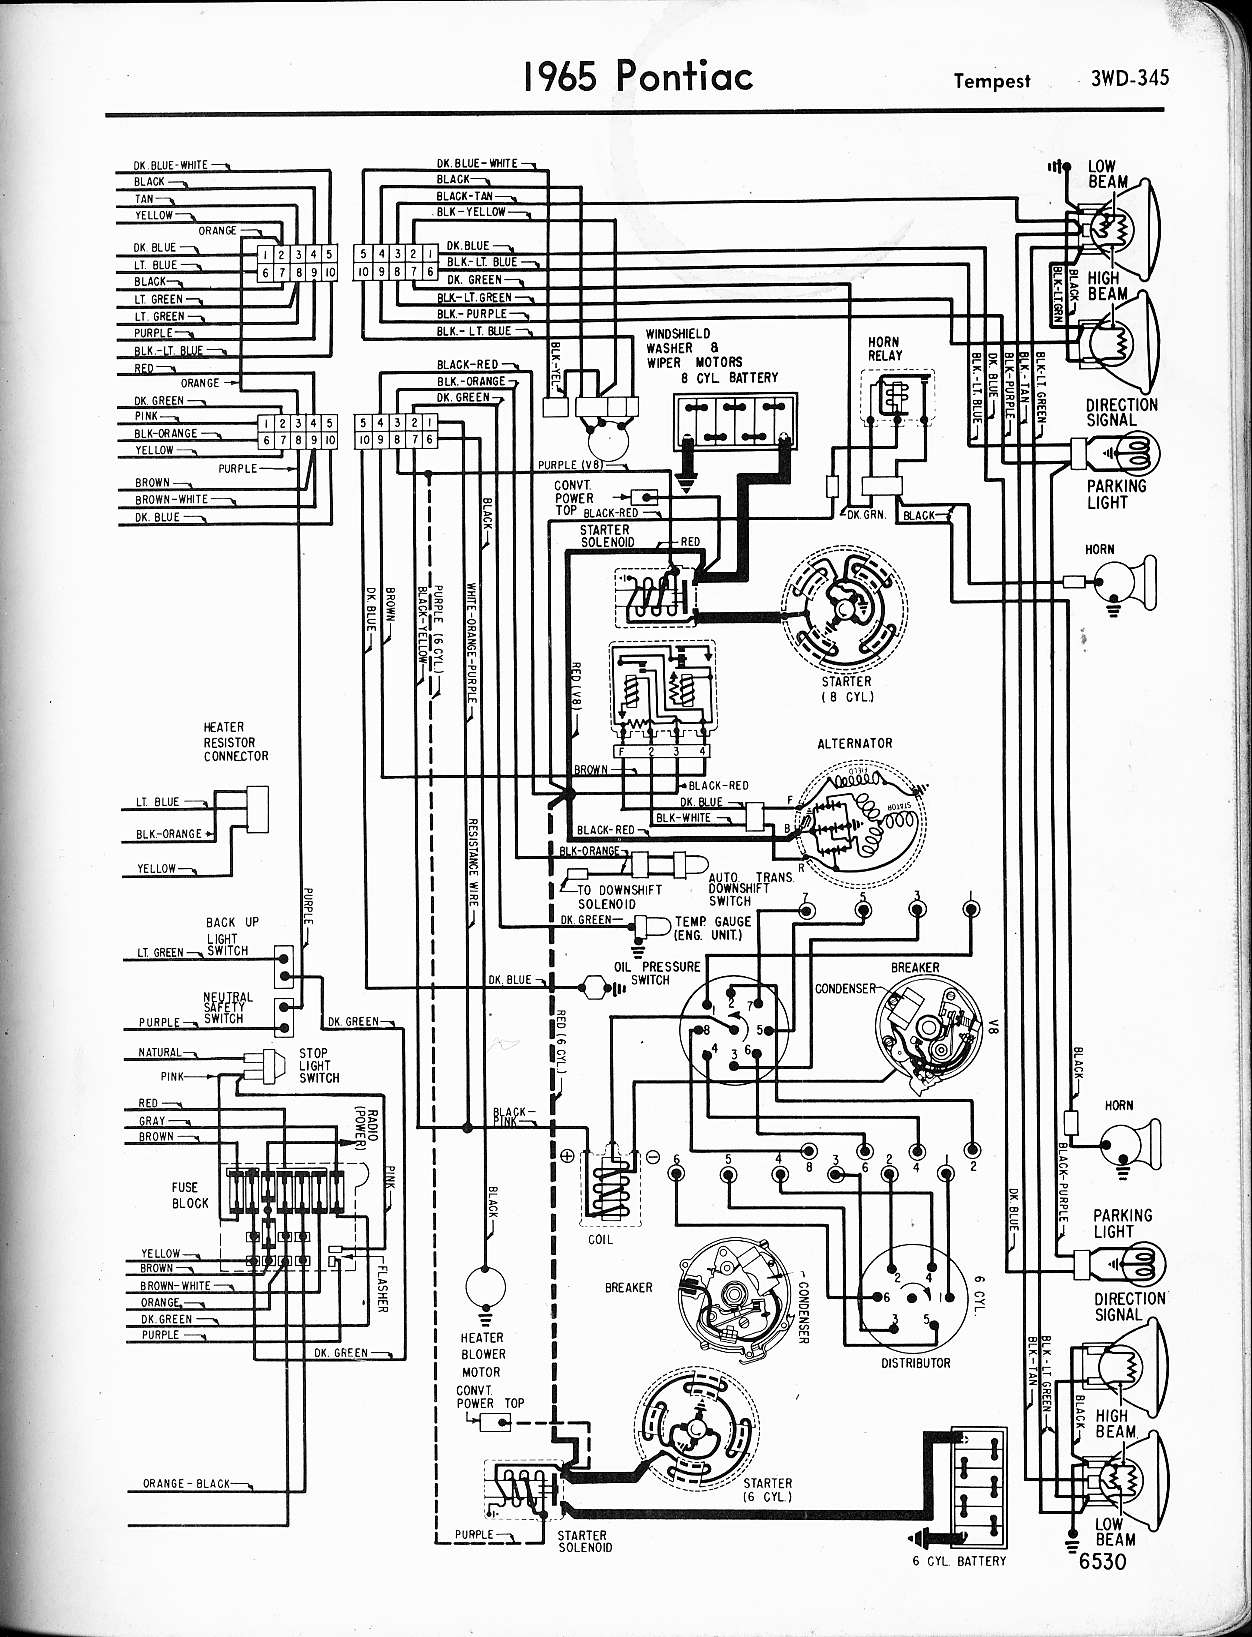 wallace racing wiring diagrams rh wallaceracing com 1965 gto wiring diagram  1965 gto dash wiring diagram